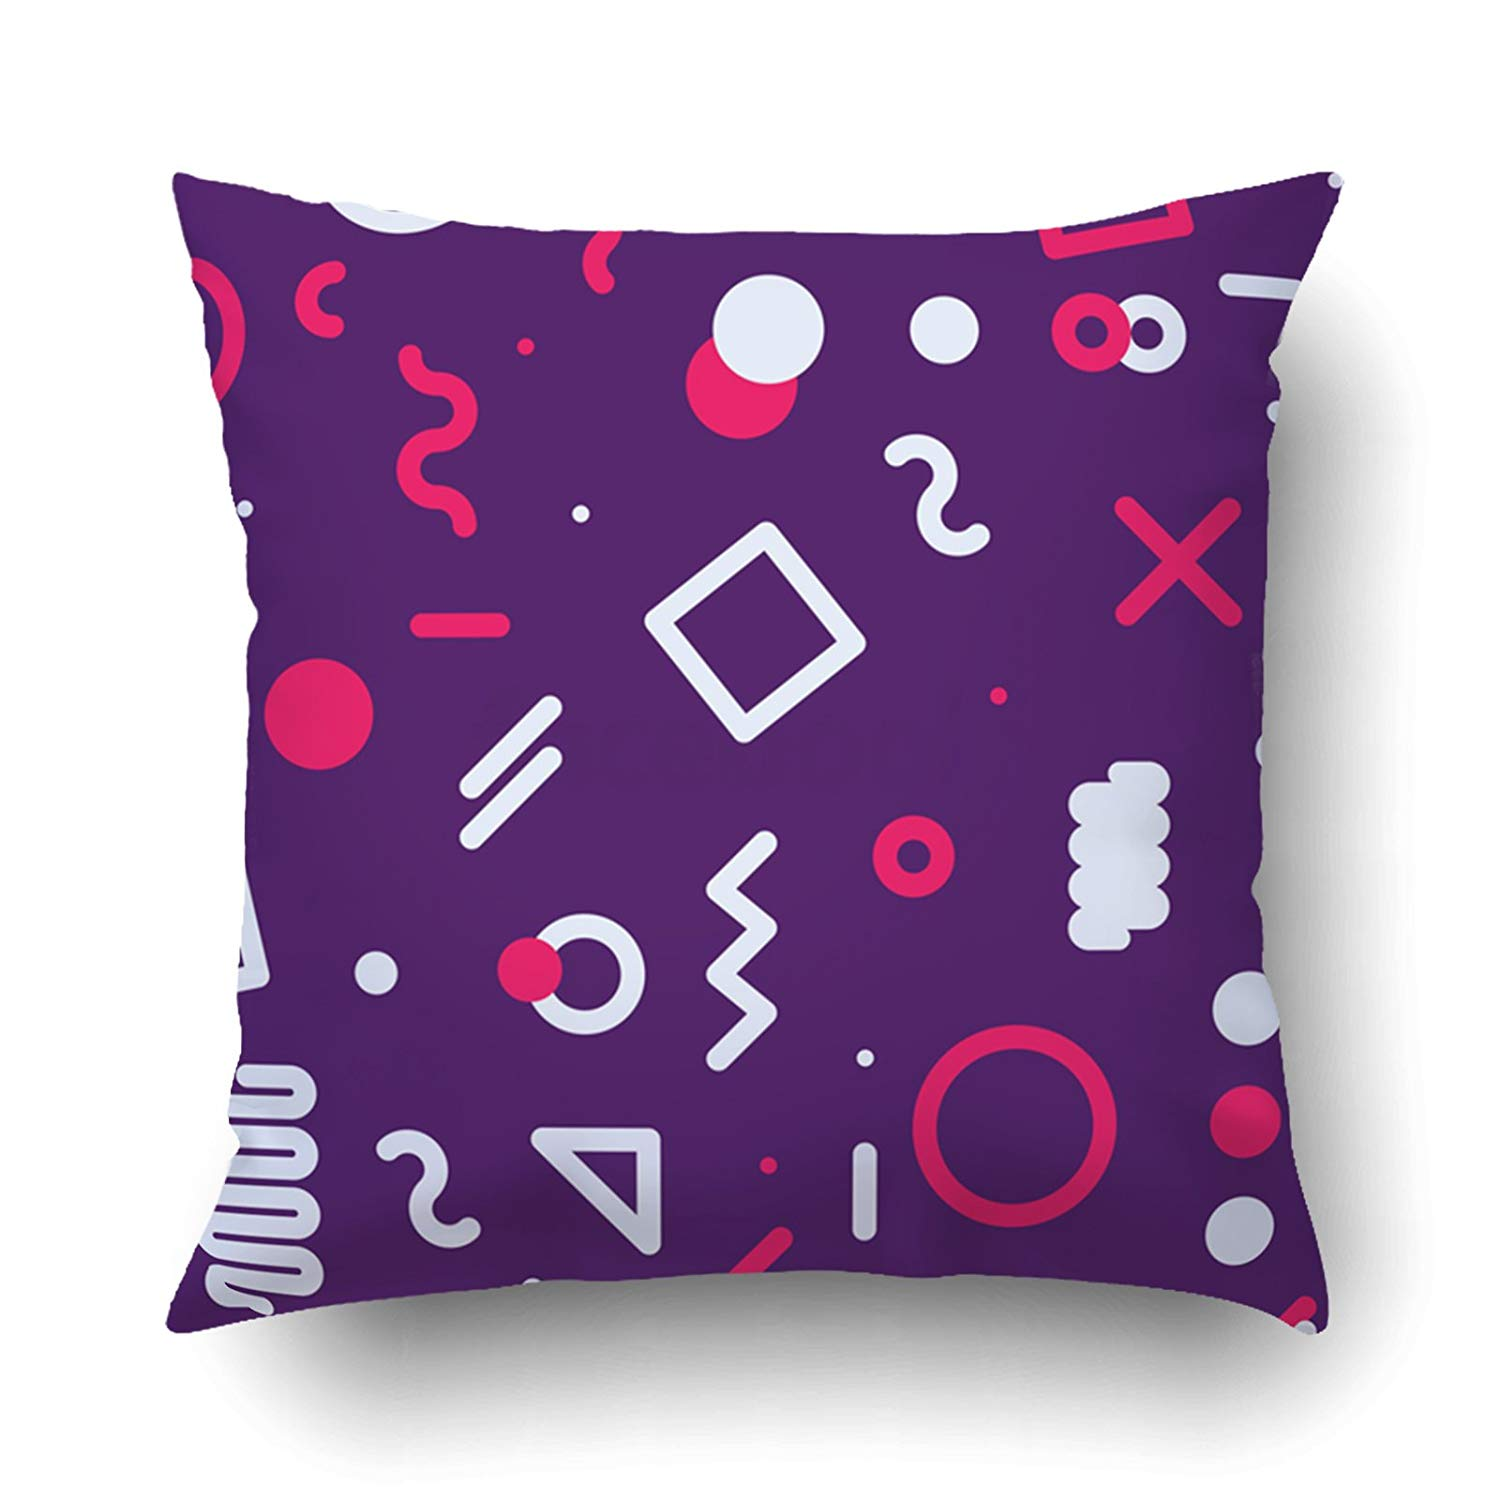 bright colored sofa pillows kebo futon bed instructions bpbop cheerful pattern memphis style for fashion